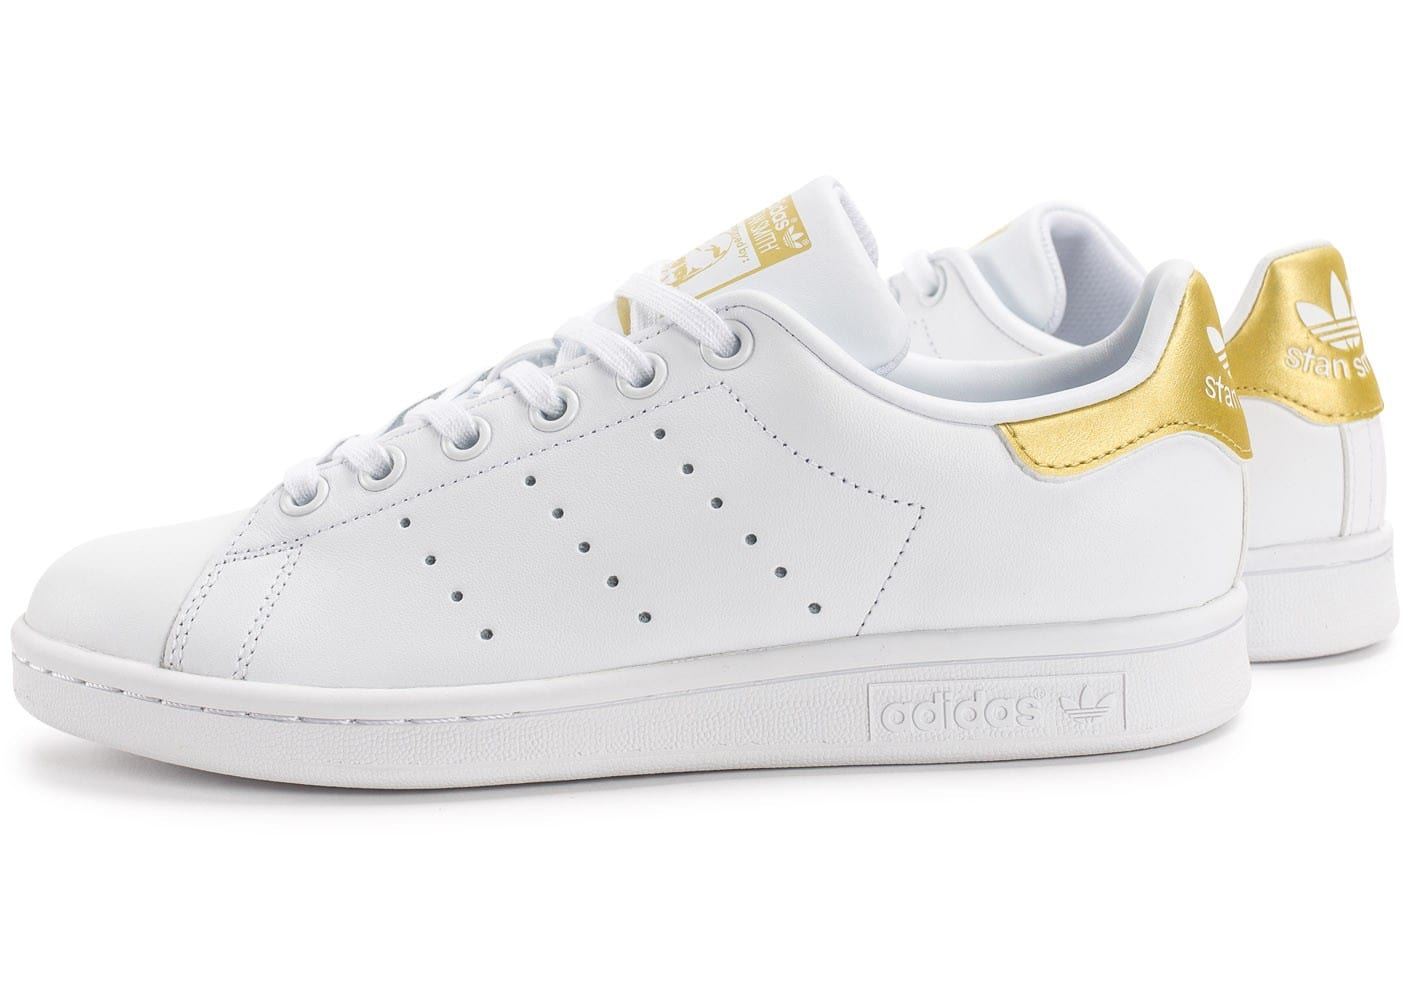 100% Authentique adidas stan smith blanche et or Outlet en ligne